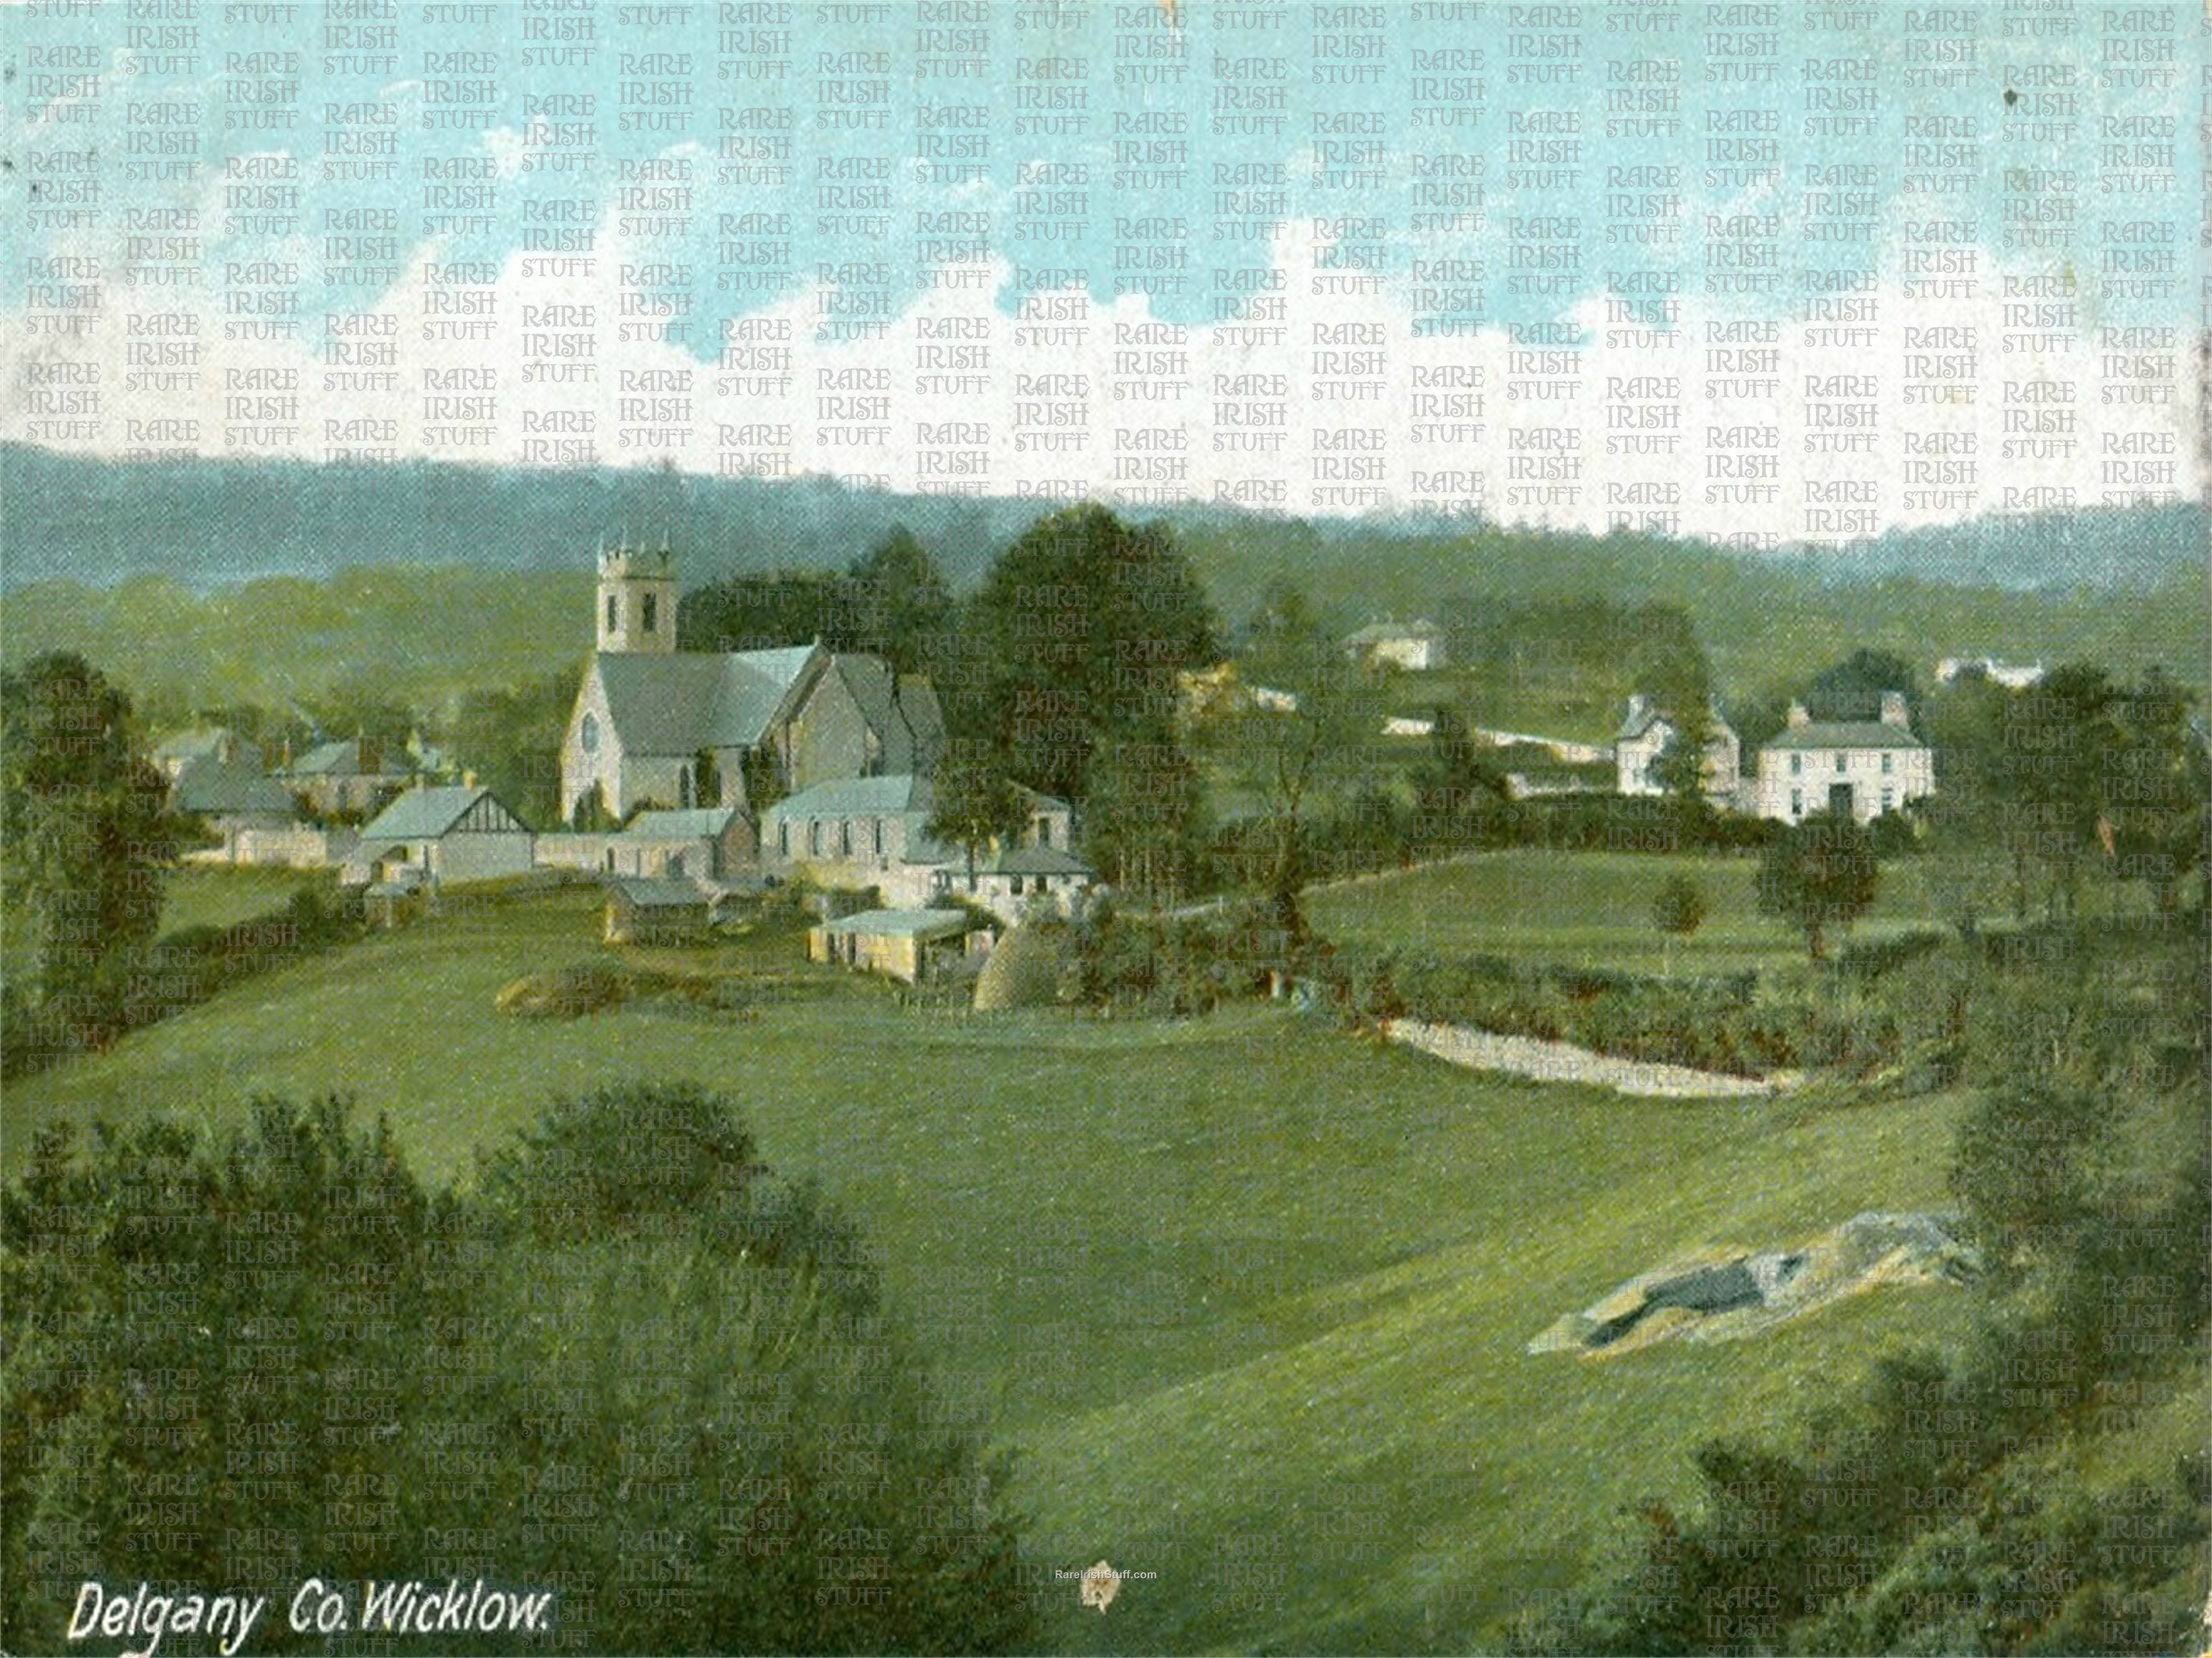 Delgany   Co  Wicklow 1895  Thumbnail0